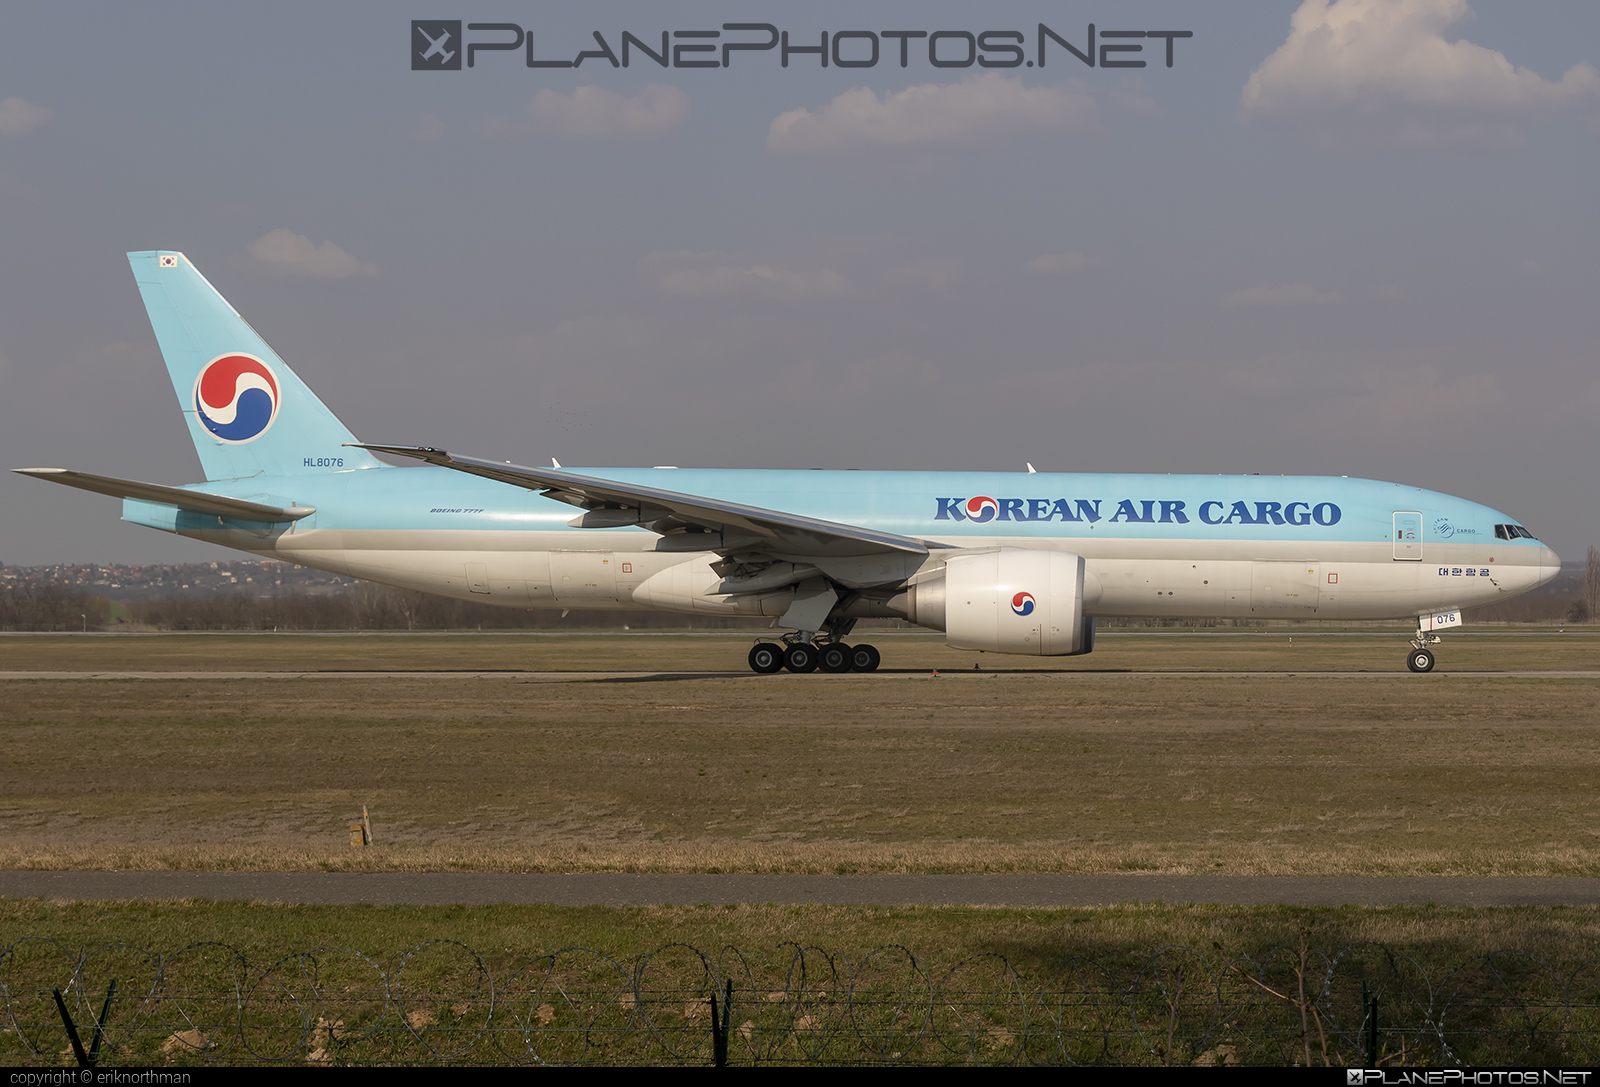 Boeing 777F - HL8076 operated by Korean Air Cargo #b777 #b777f #b777freighter #boeing #boeing777 #koreanair #koreanaircargo #tripleseven